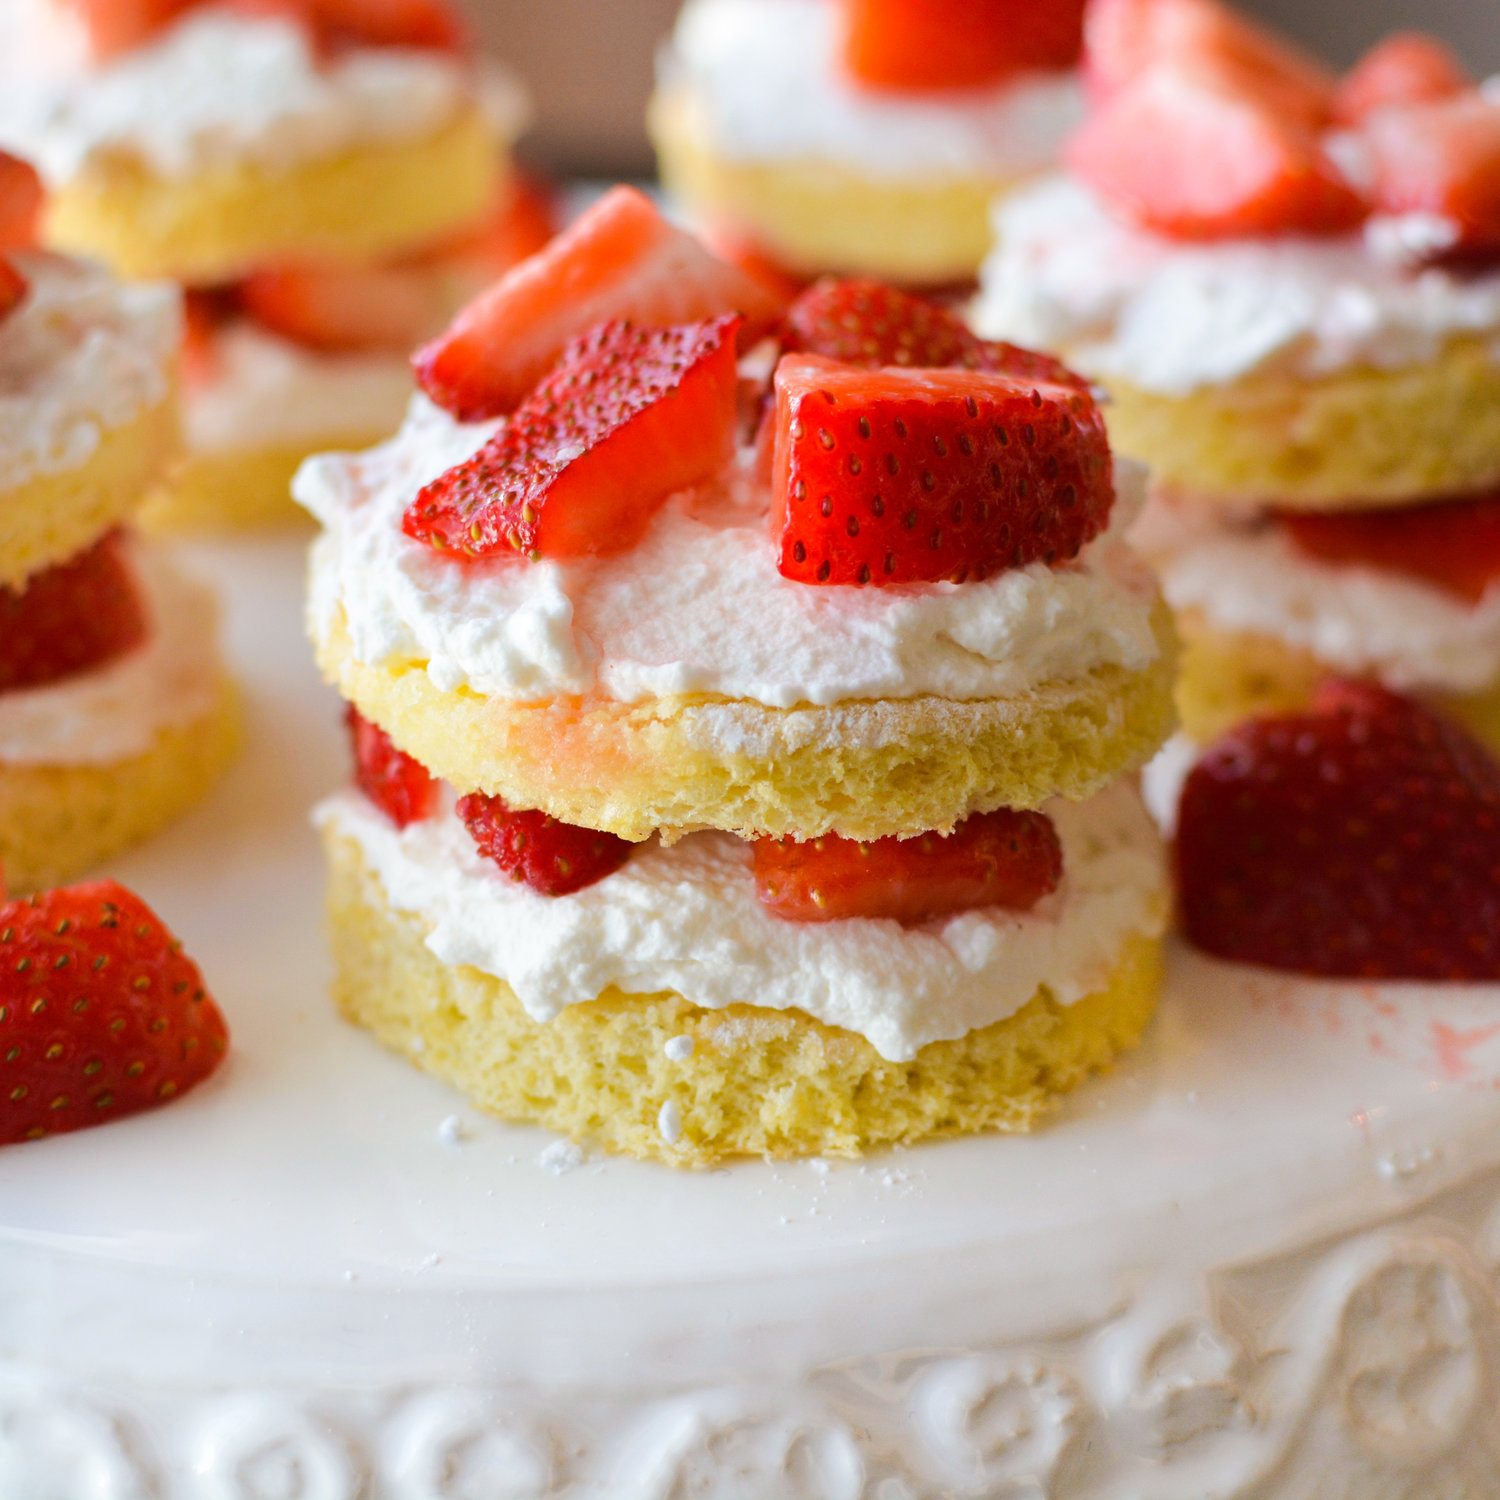 Sugared Lemon Sponge Cake with Strawberries and Whipped Cream